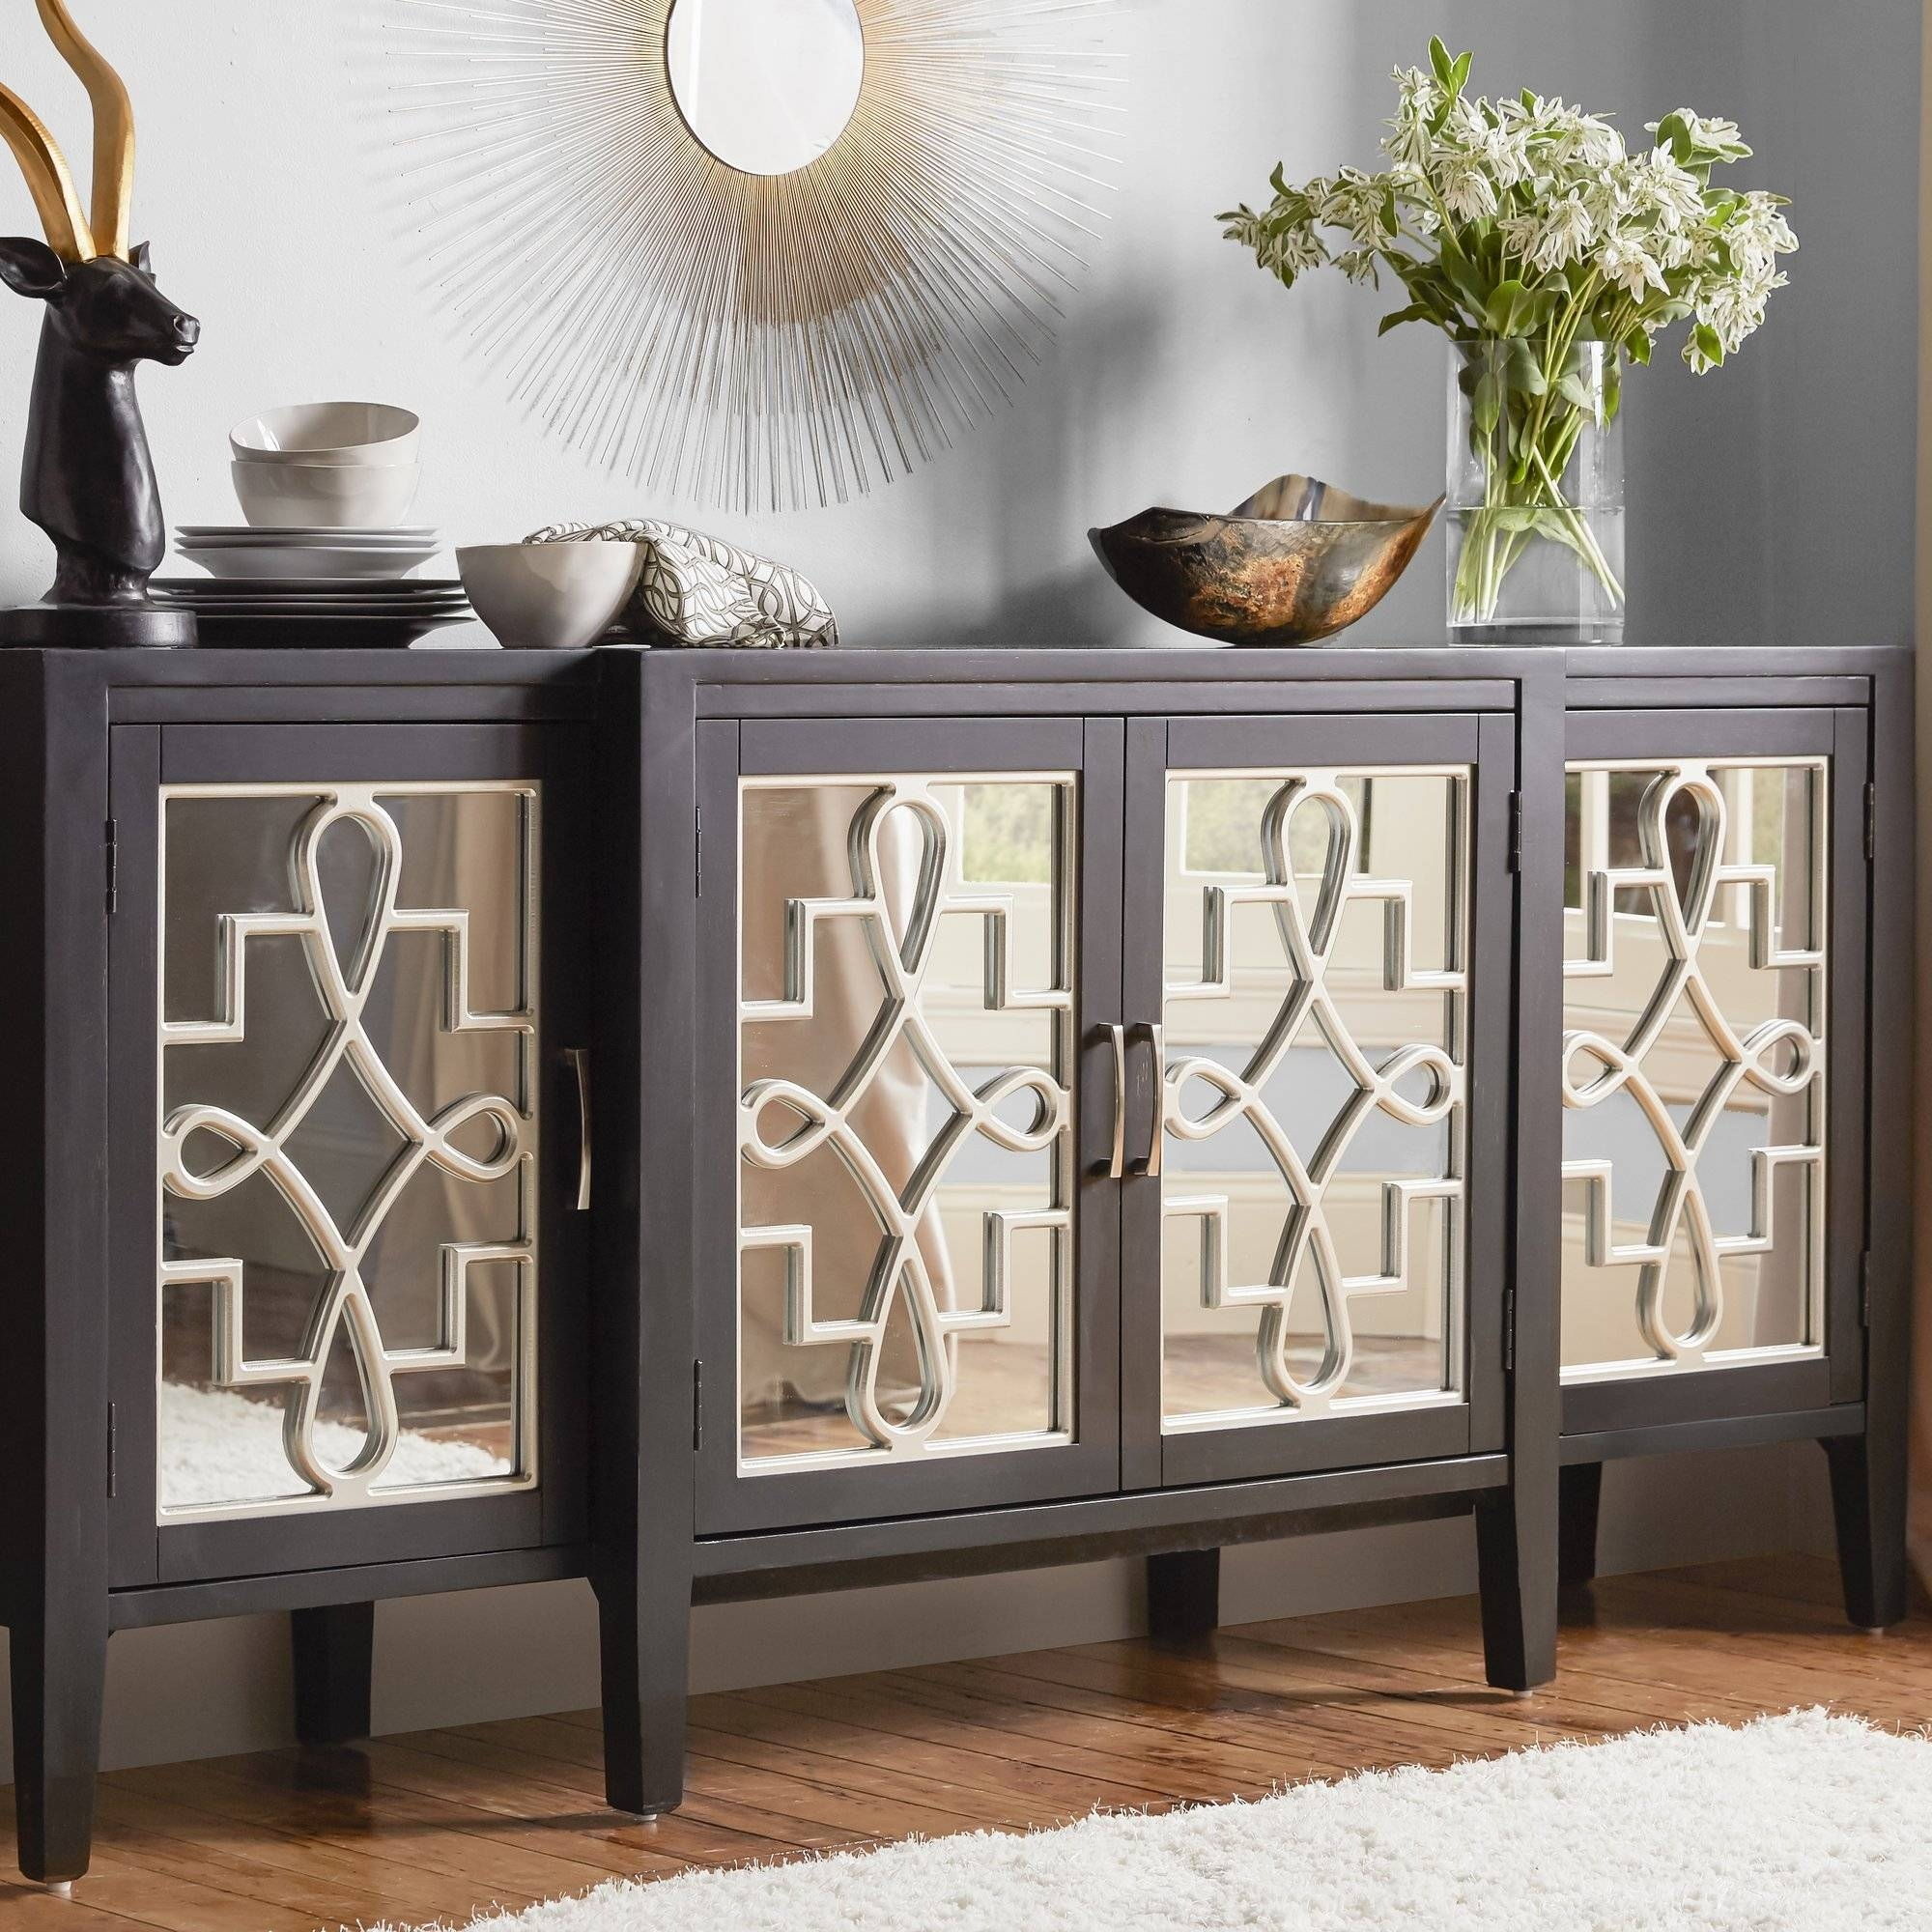 Furniture: Contemporary Version Of Distressed Sideboard Buffet inside Small Mirrored Sideboards (Image 6 of 30)